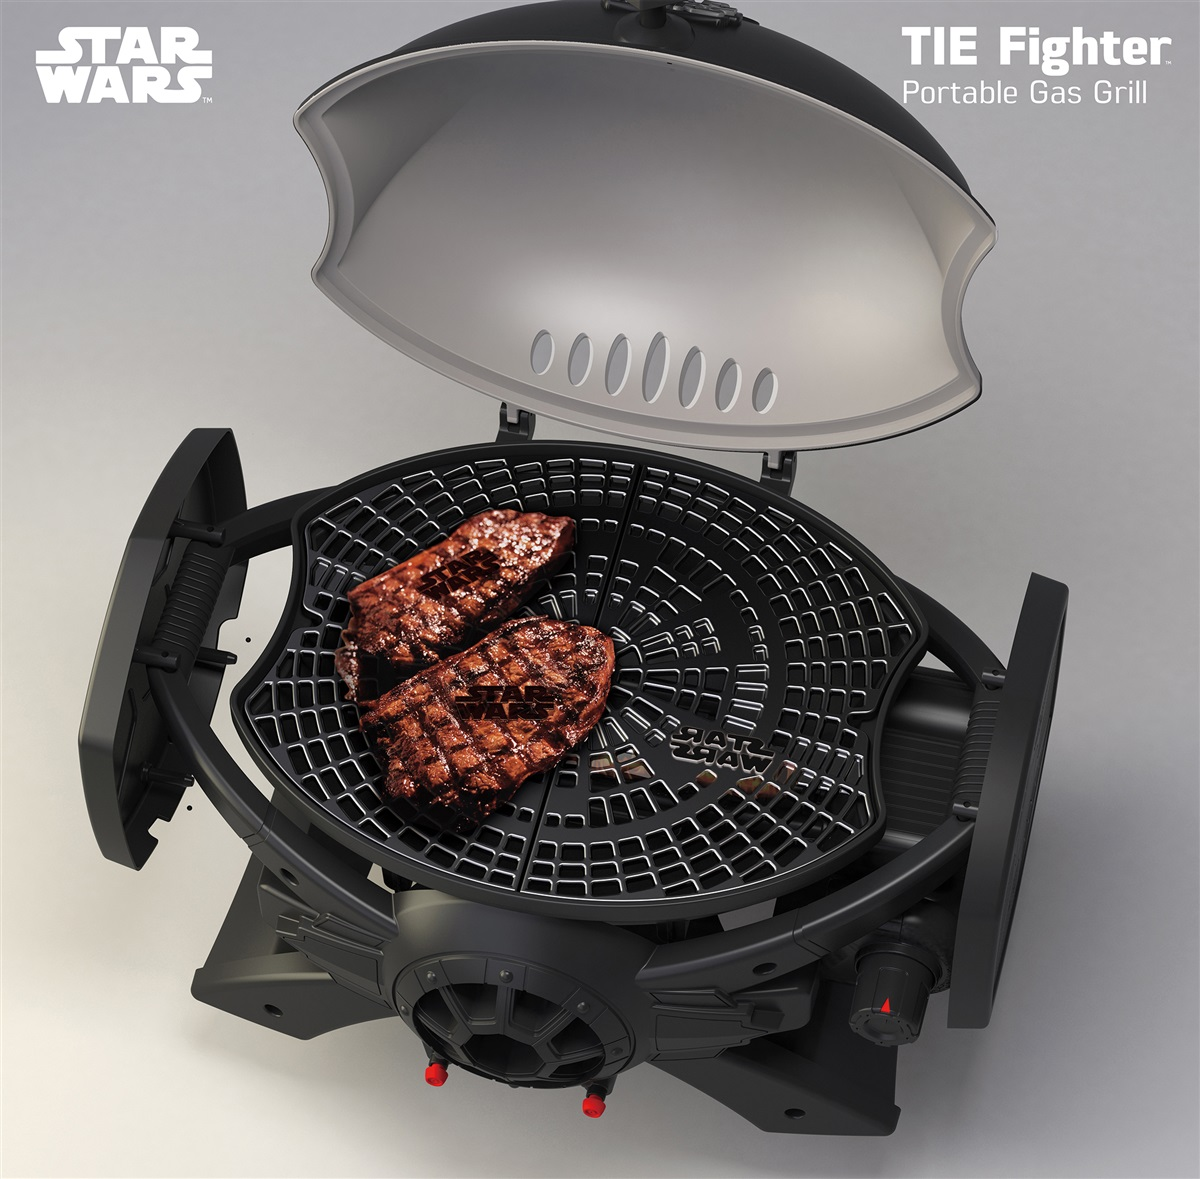 Gasmate Voyager Portable Gas Bbq Review gasmate star wars tie fighter single burner portable bbq